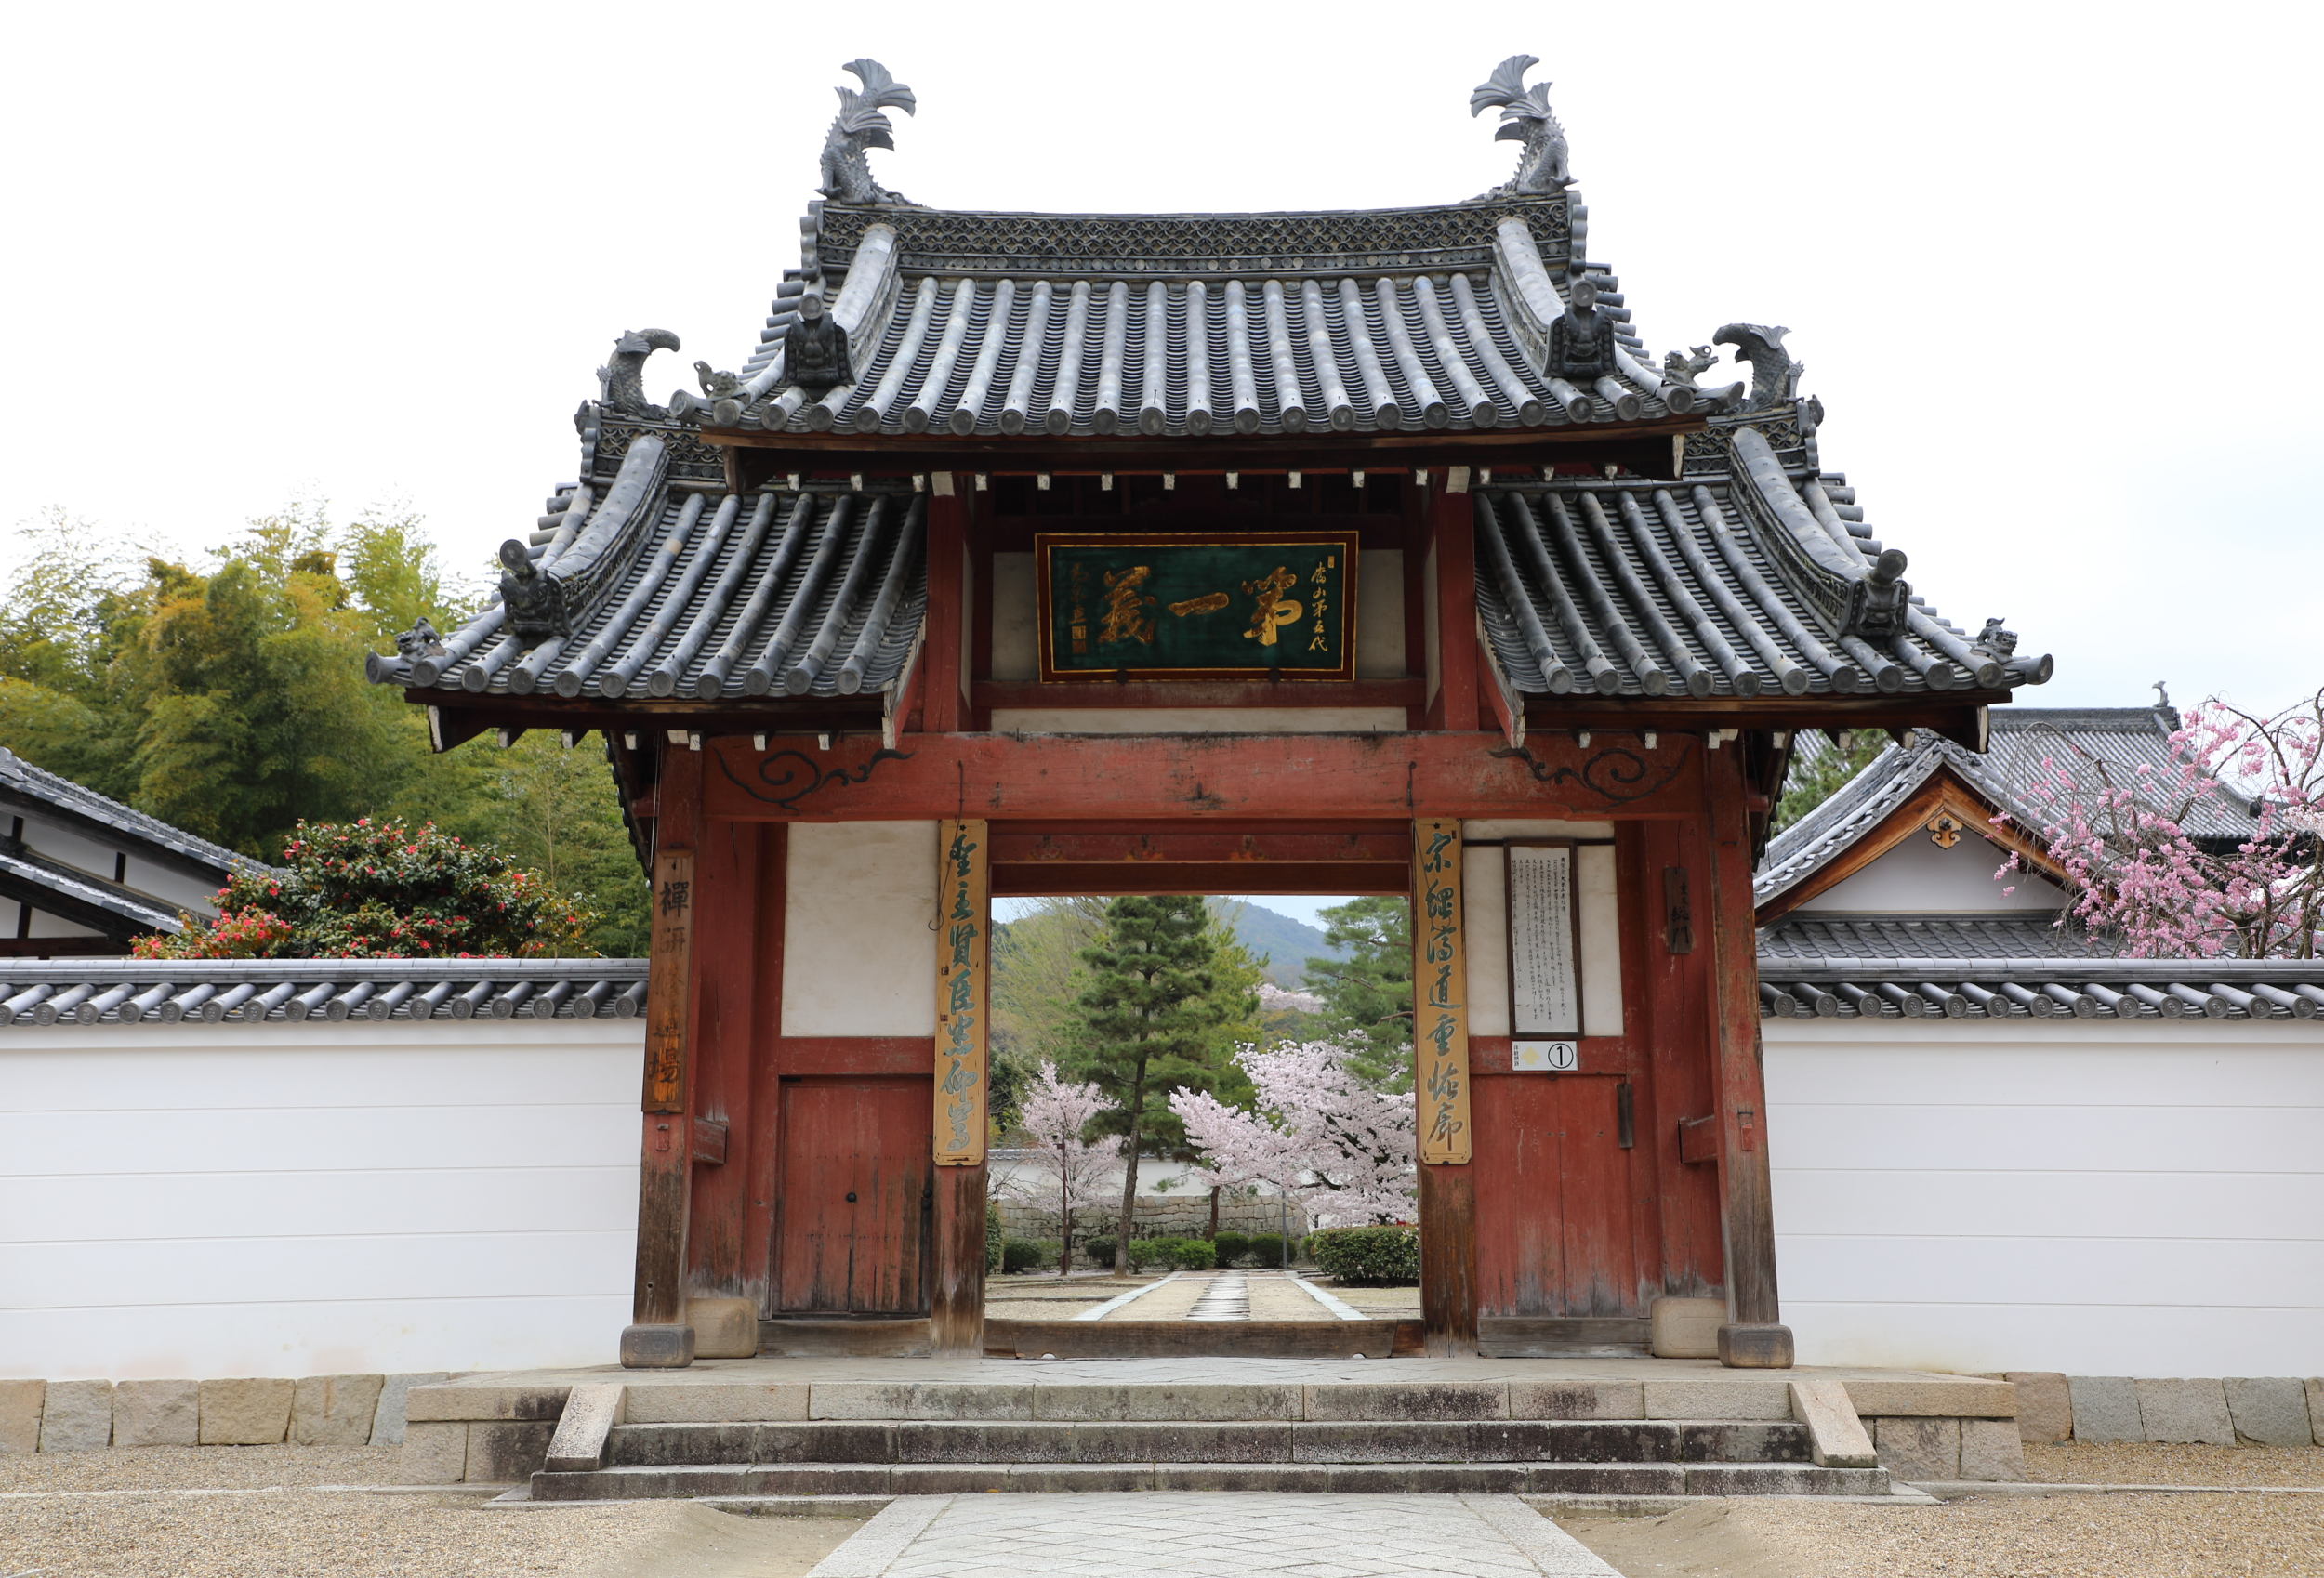 The quintessentially Chinese-style Somon Gate is the main entrance to the Manpuku-ji temple complex.